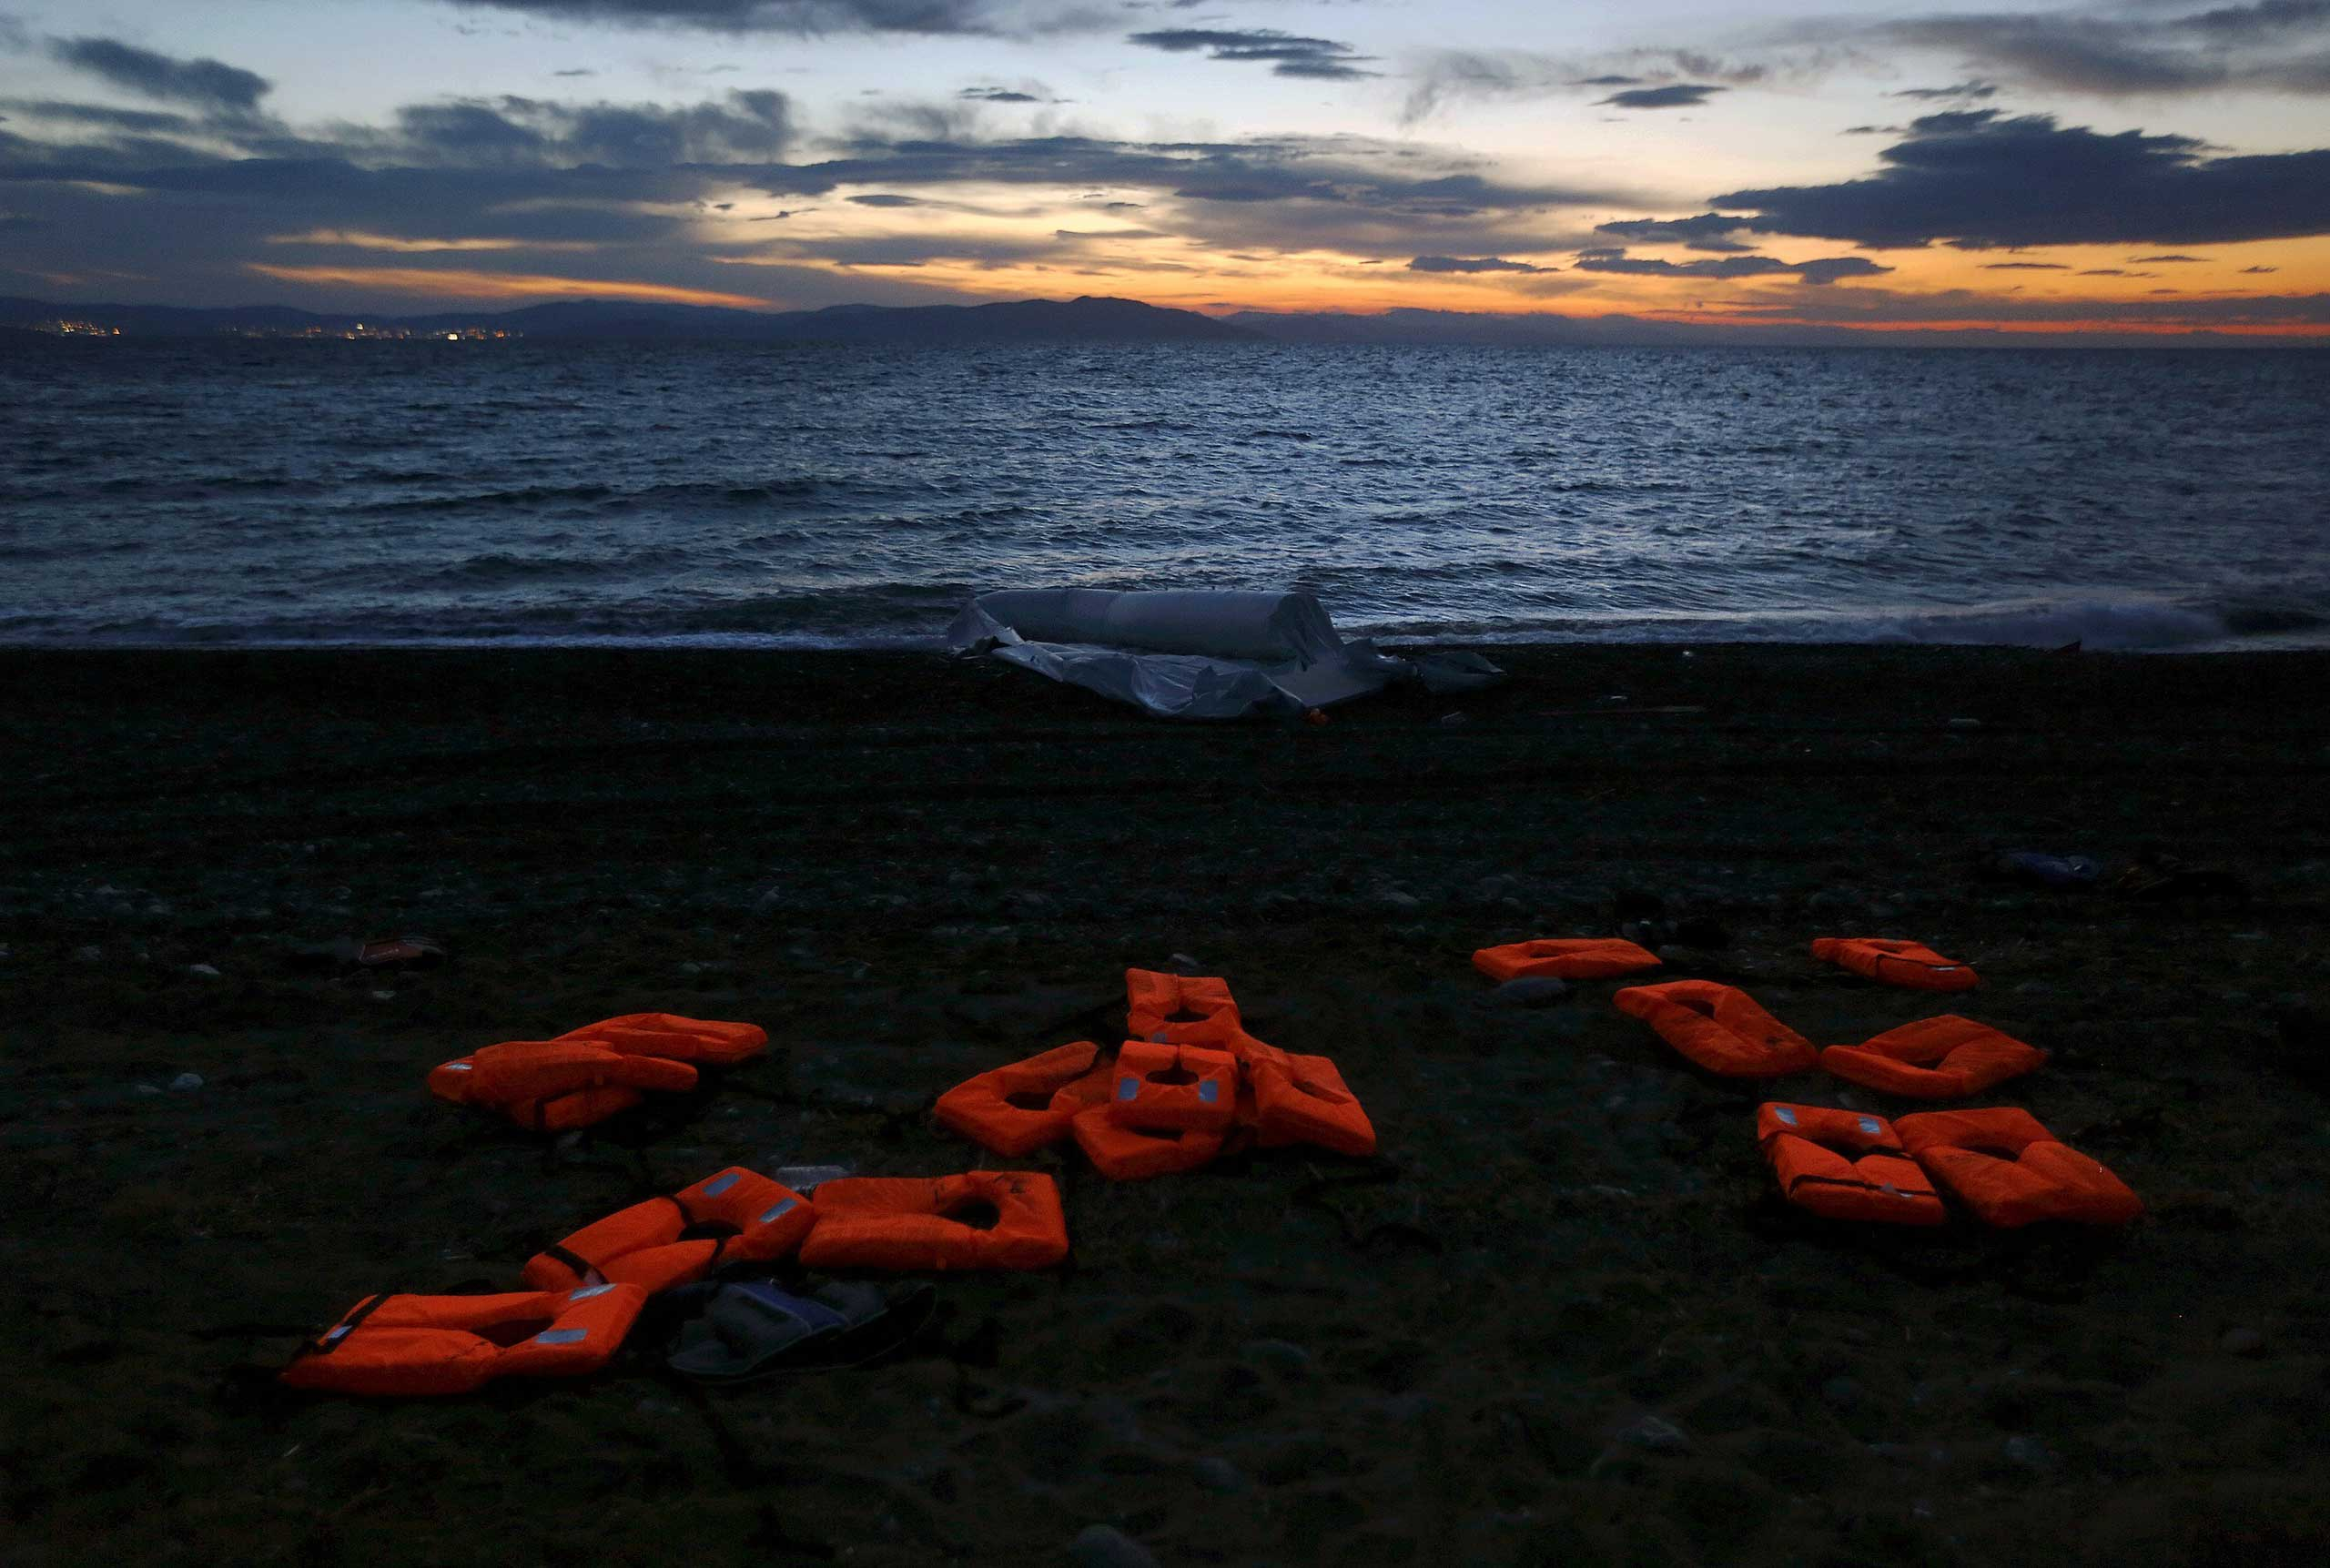 Life vests and a deflated dinghy are seen on a beach on the Greek island of Kos, following the arrival of Afghan immigrants, on May 30, 2015.